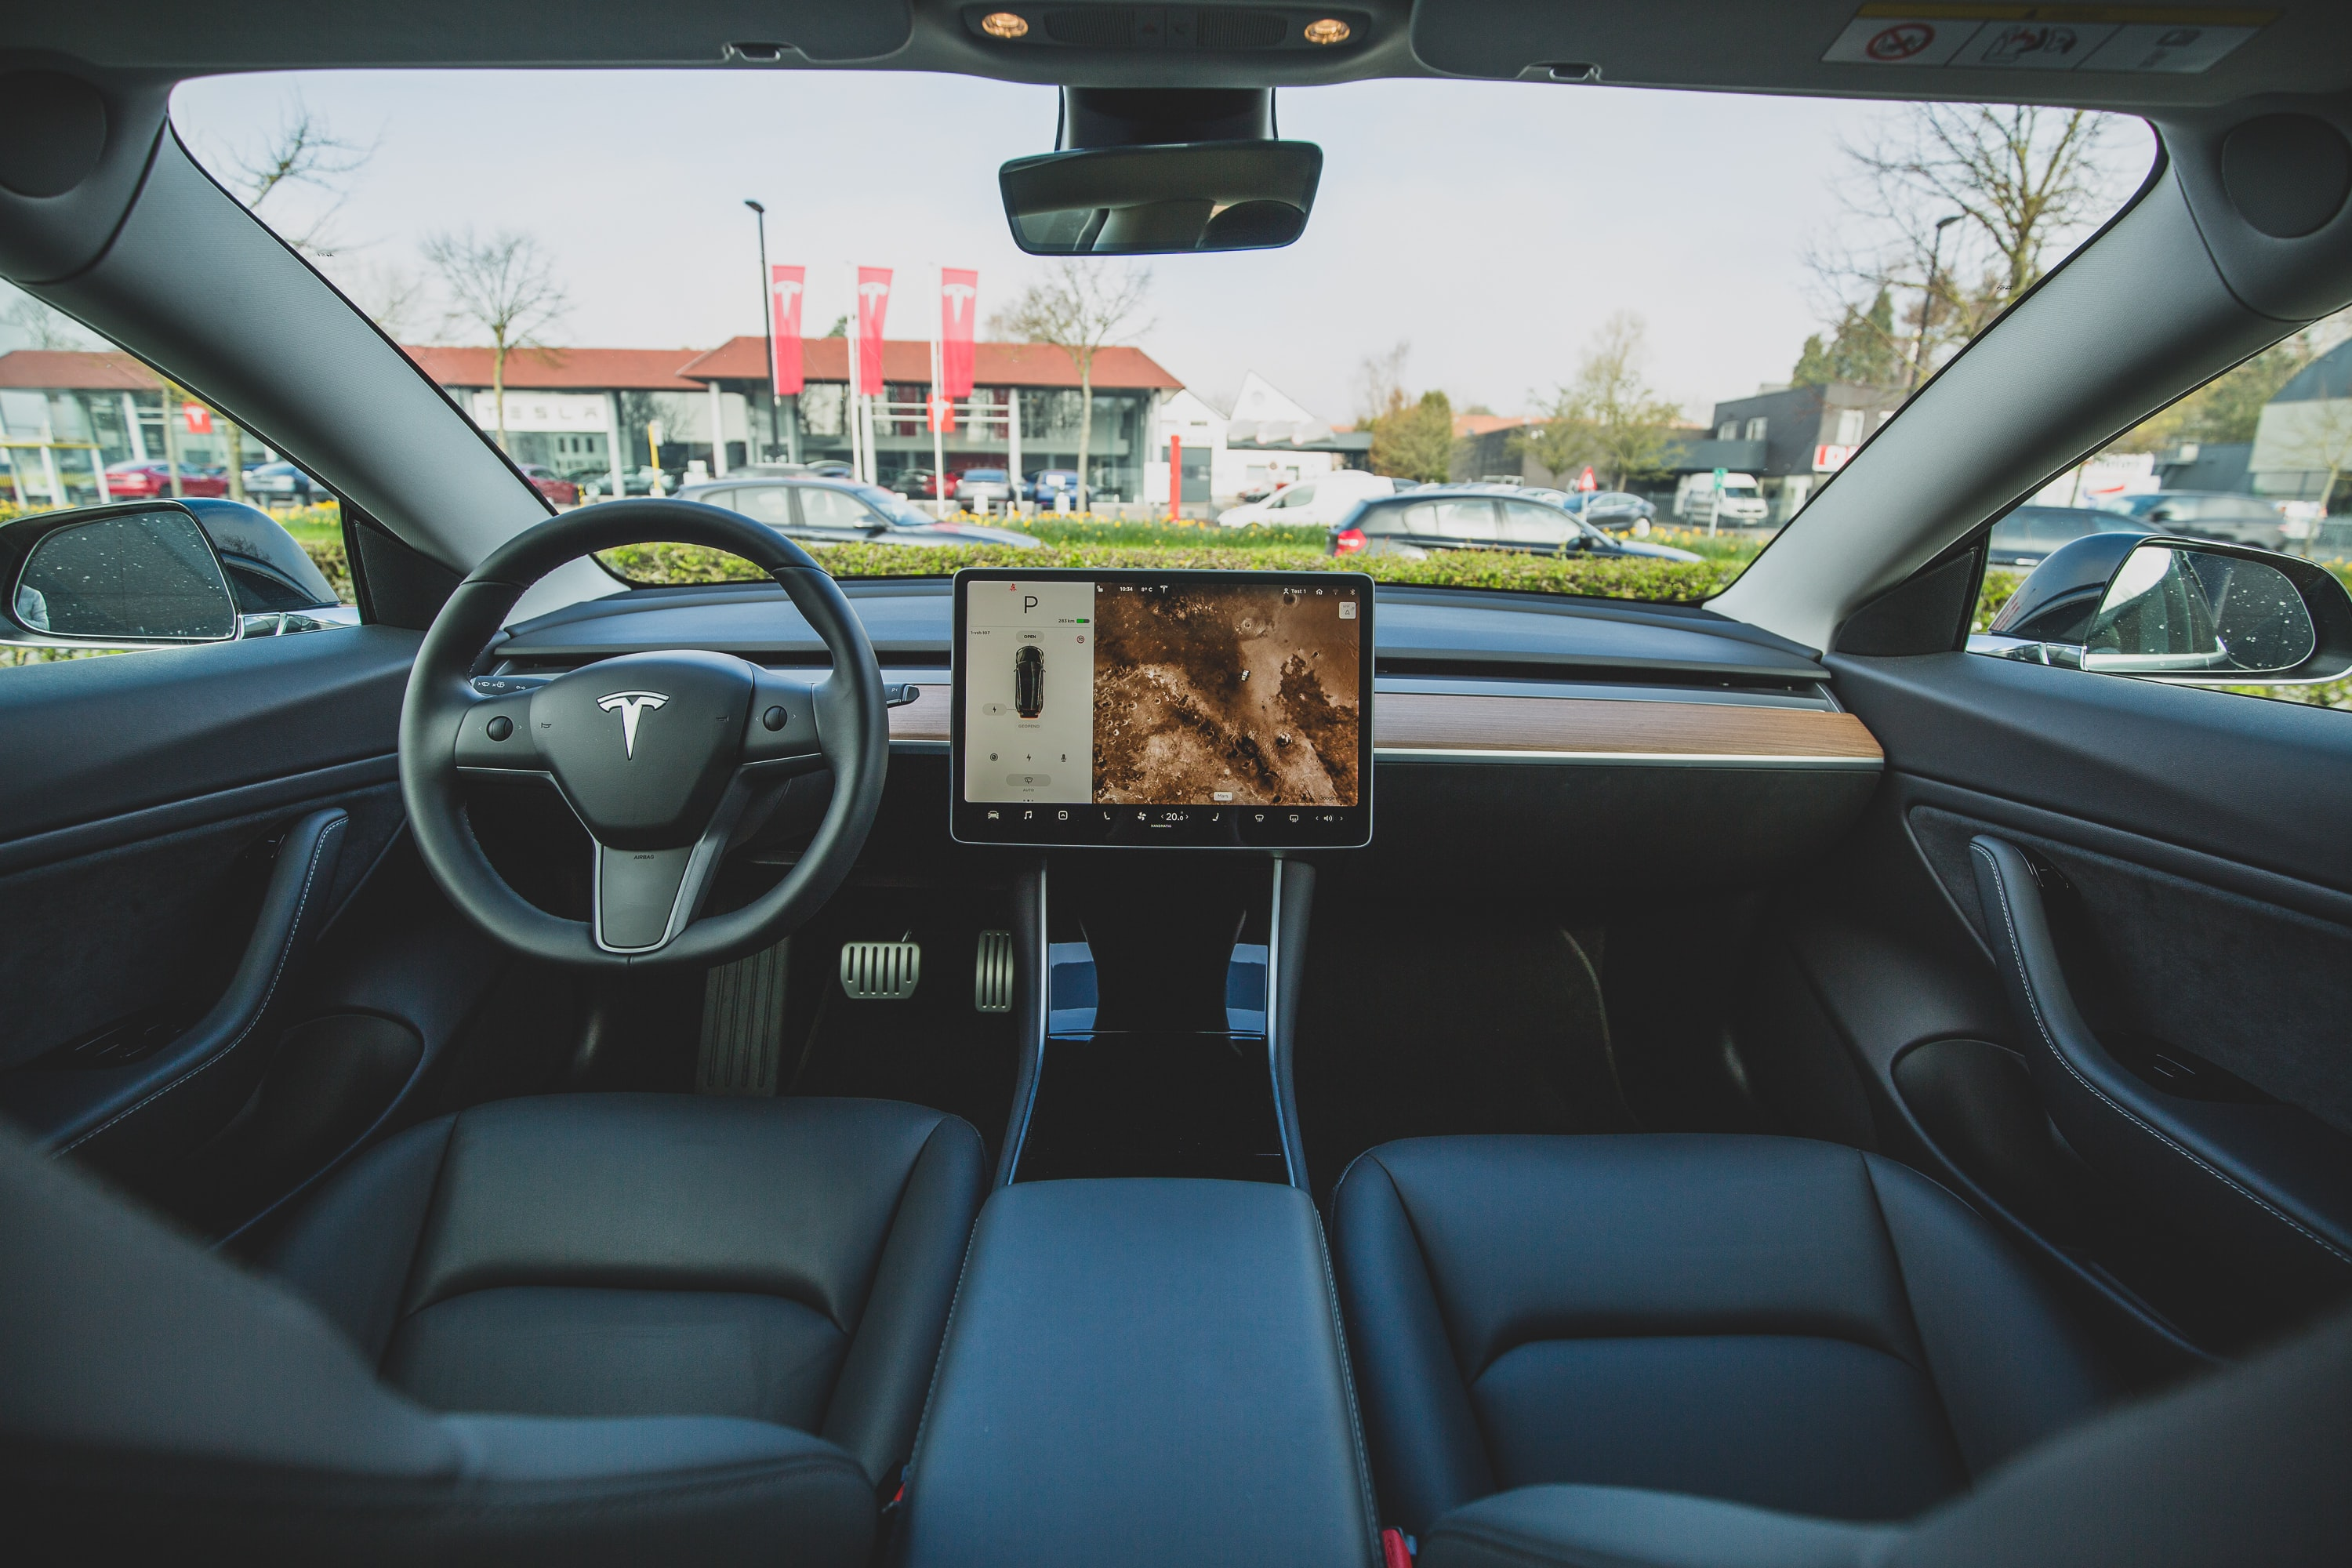 Interior of a Tesla showing the dashboard and touch screen interface